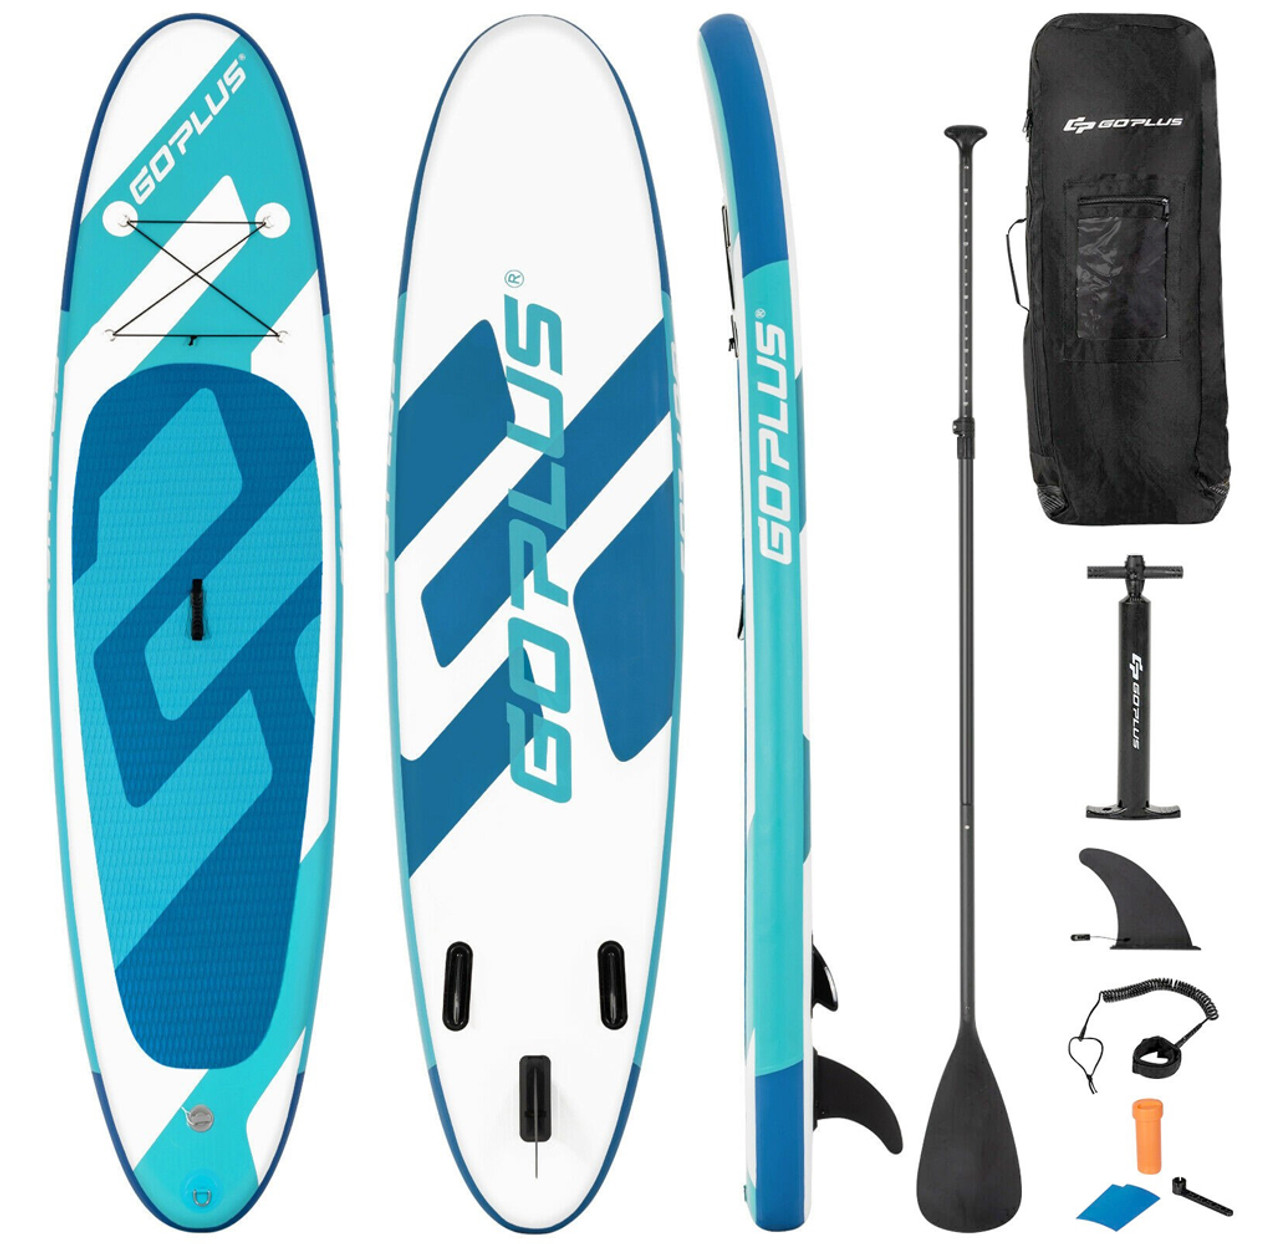 Inflatable 10-Foot Stand-up Paddle Board! 4.99 (REG 9.99) + Free Shipping at Until Gone!